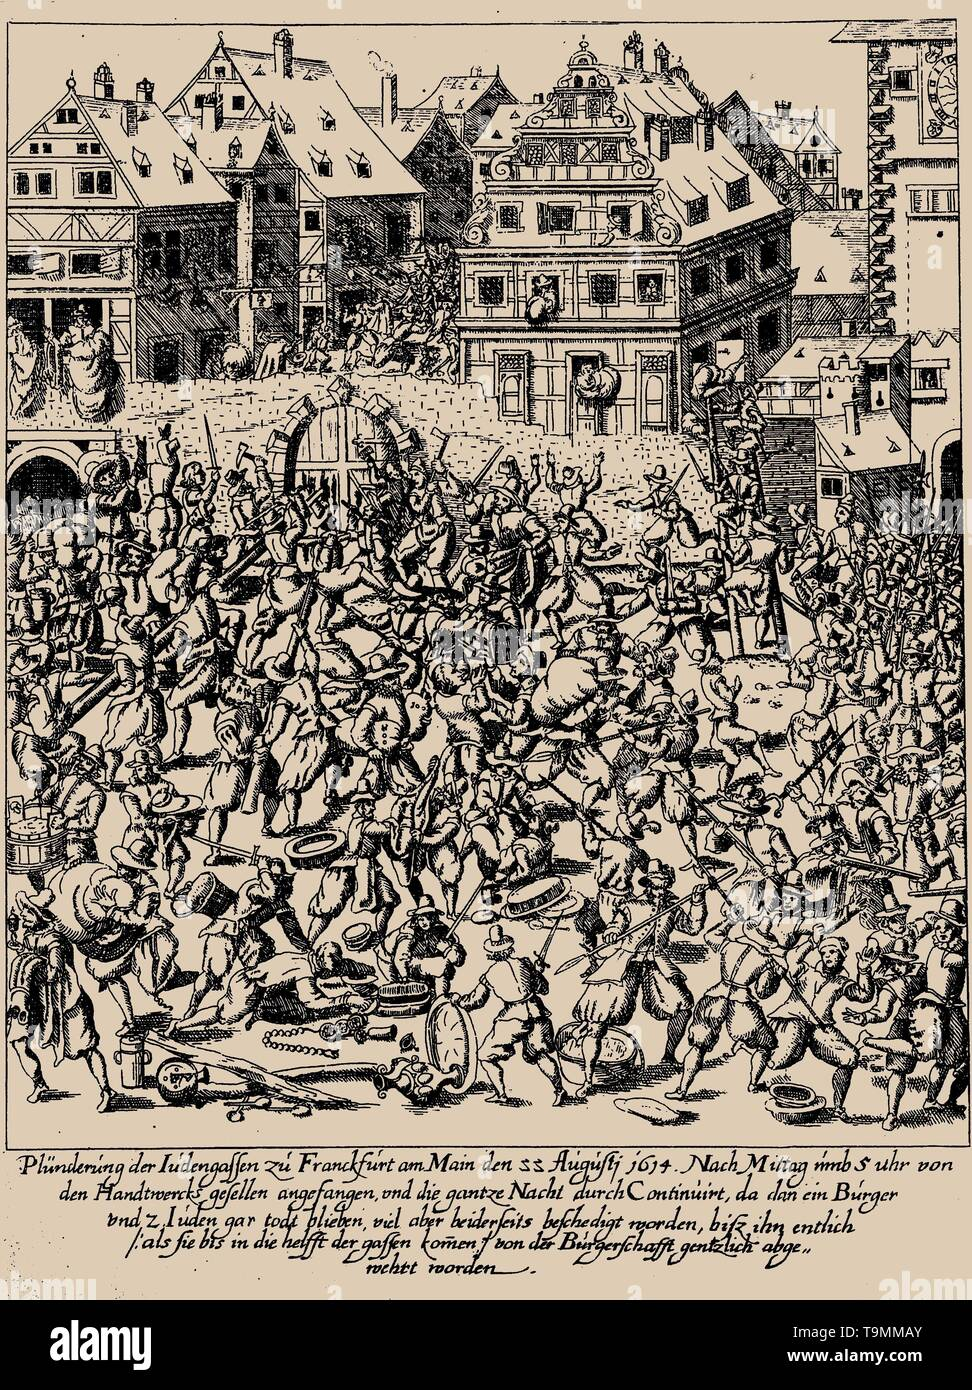 The Fettmilch Rising. The plundering of the Judengasse in Frankfurt on August 22, 1614. Museum: PRIVATE COLLECTION. Author: GEORG KELLER. - Stock Image